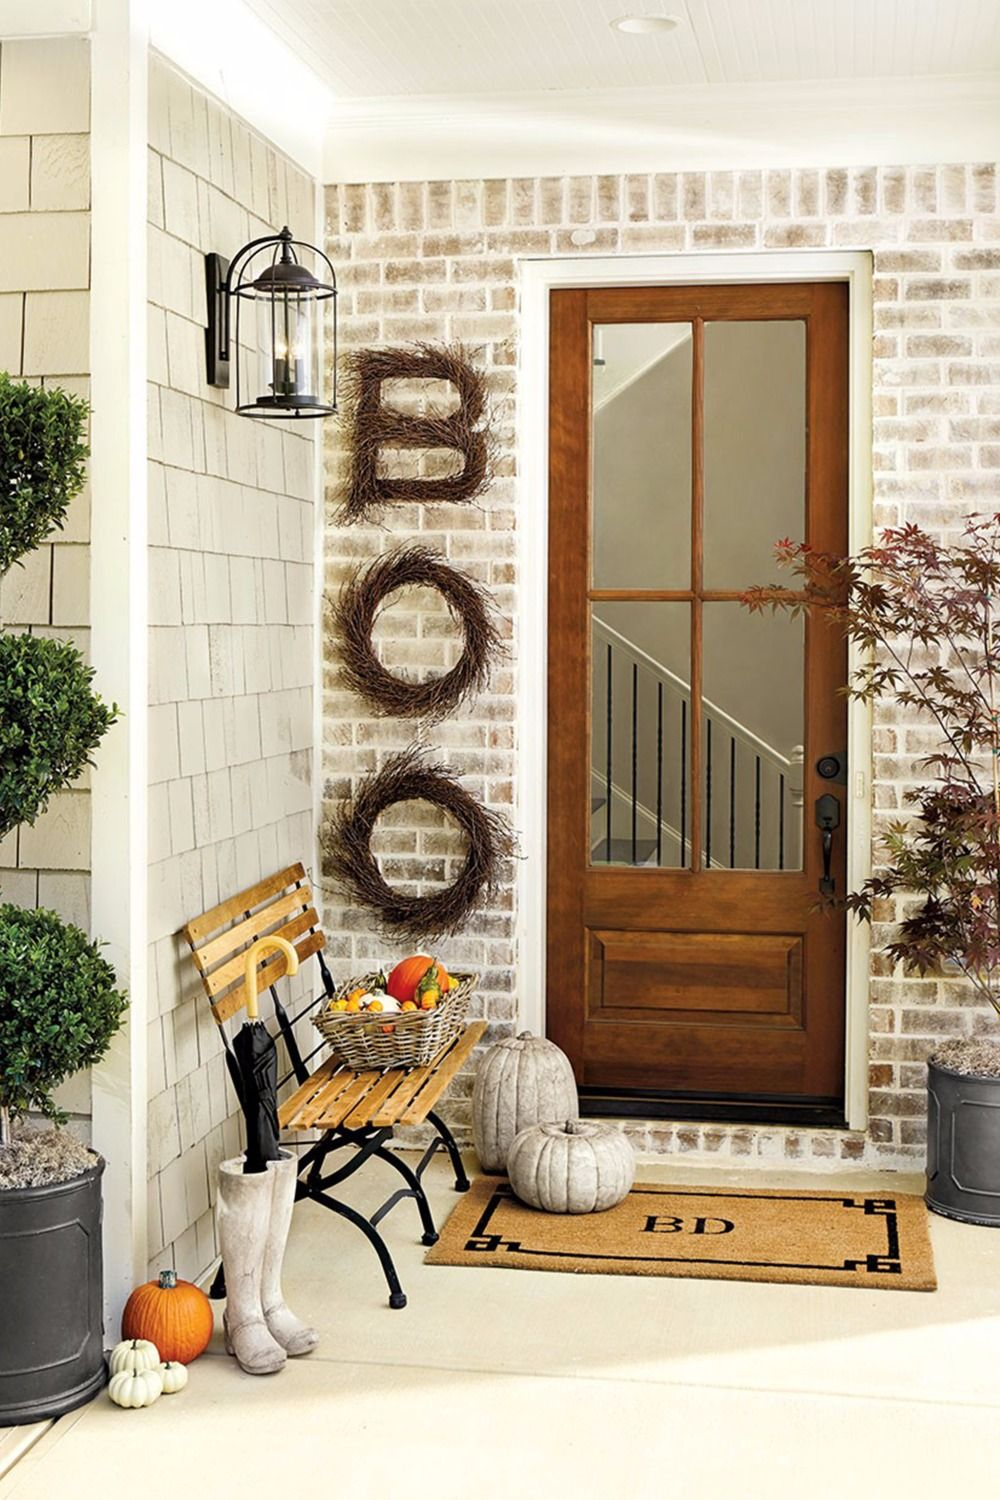 15 Fall Porch Decorating Ideas Concrete, Wreaths and Learning - Front Door Halloween Decorations